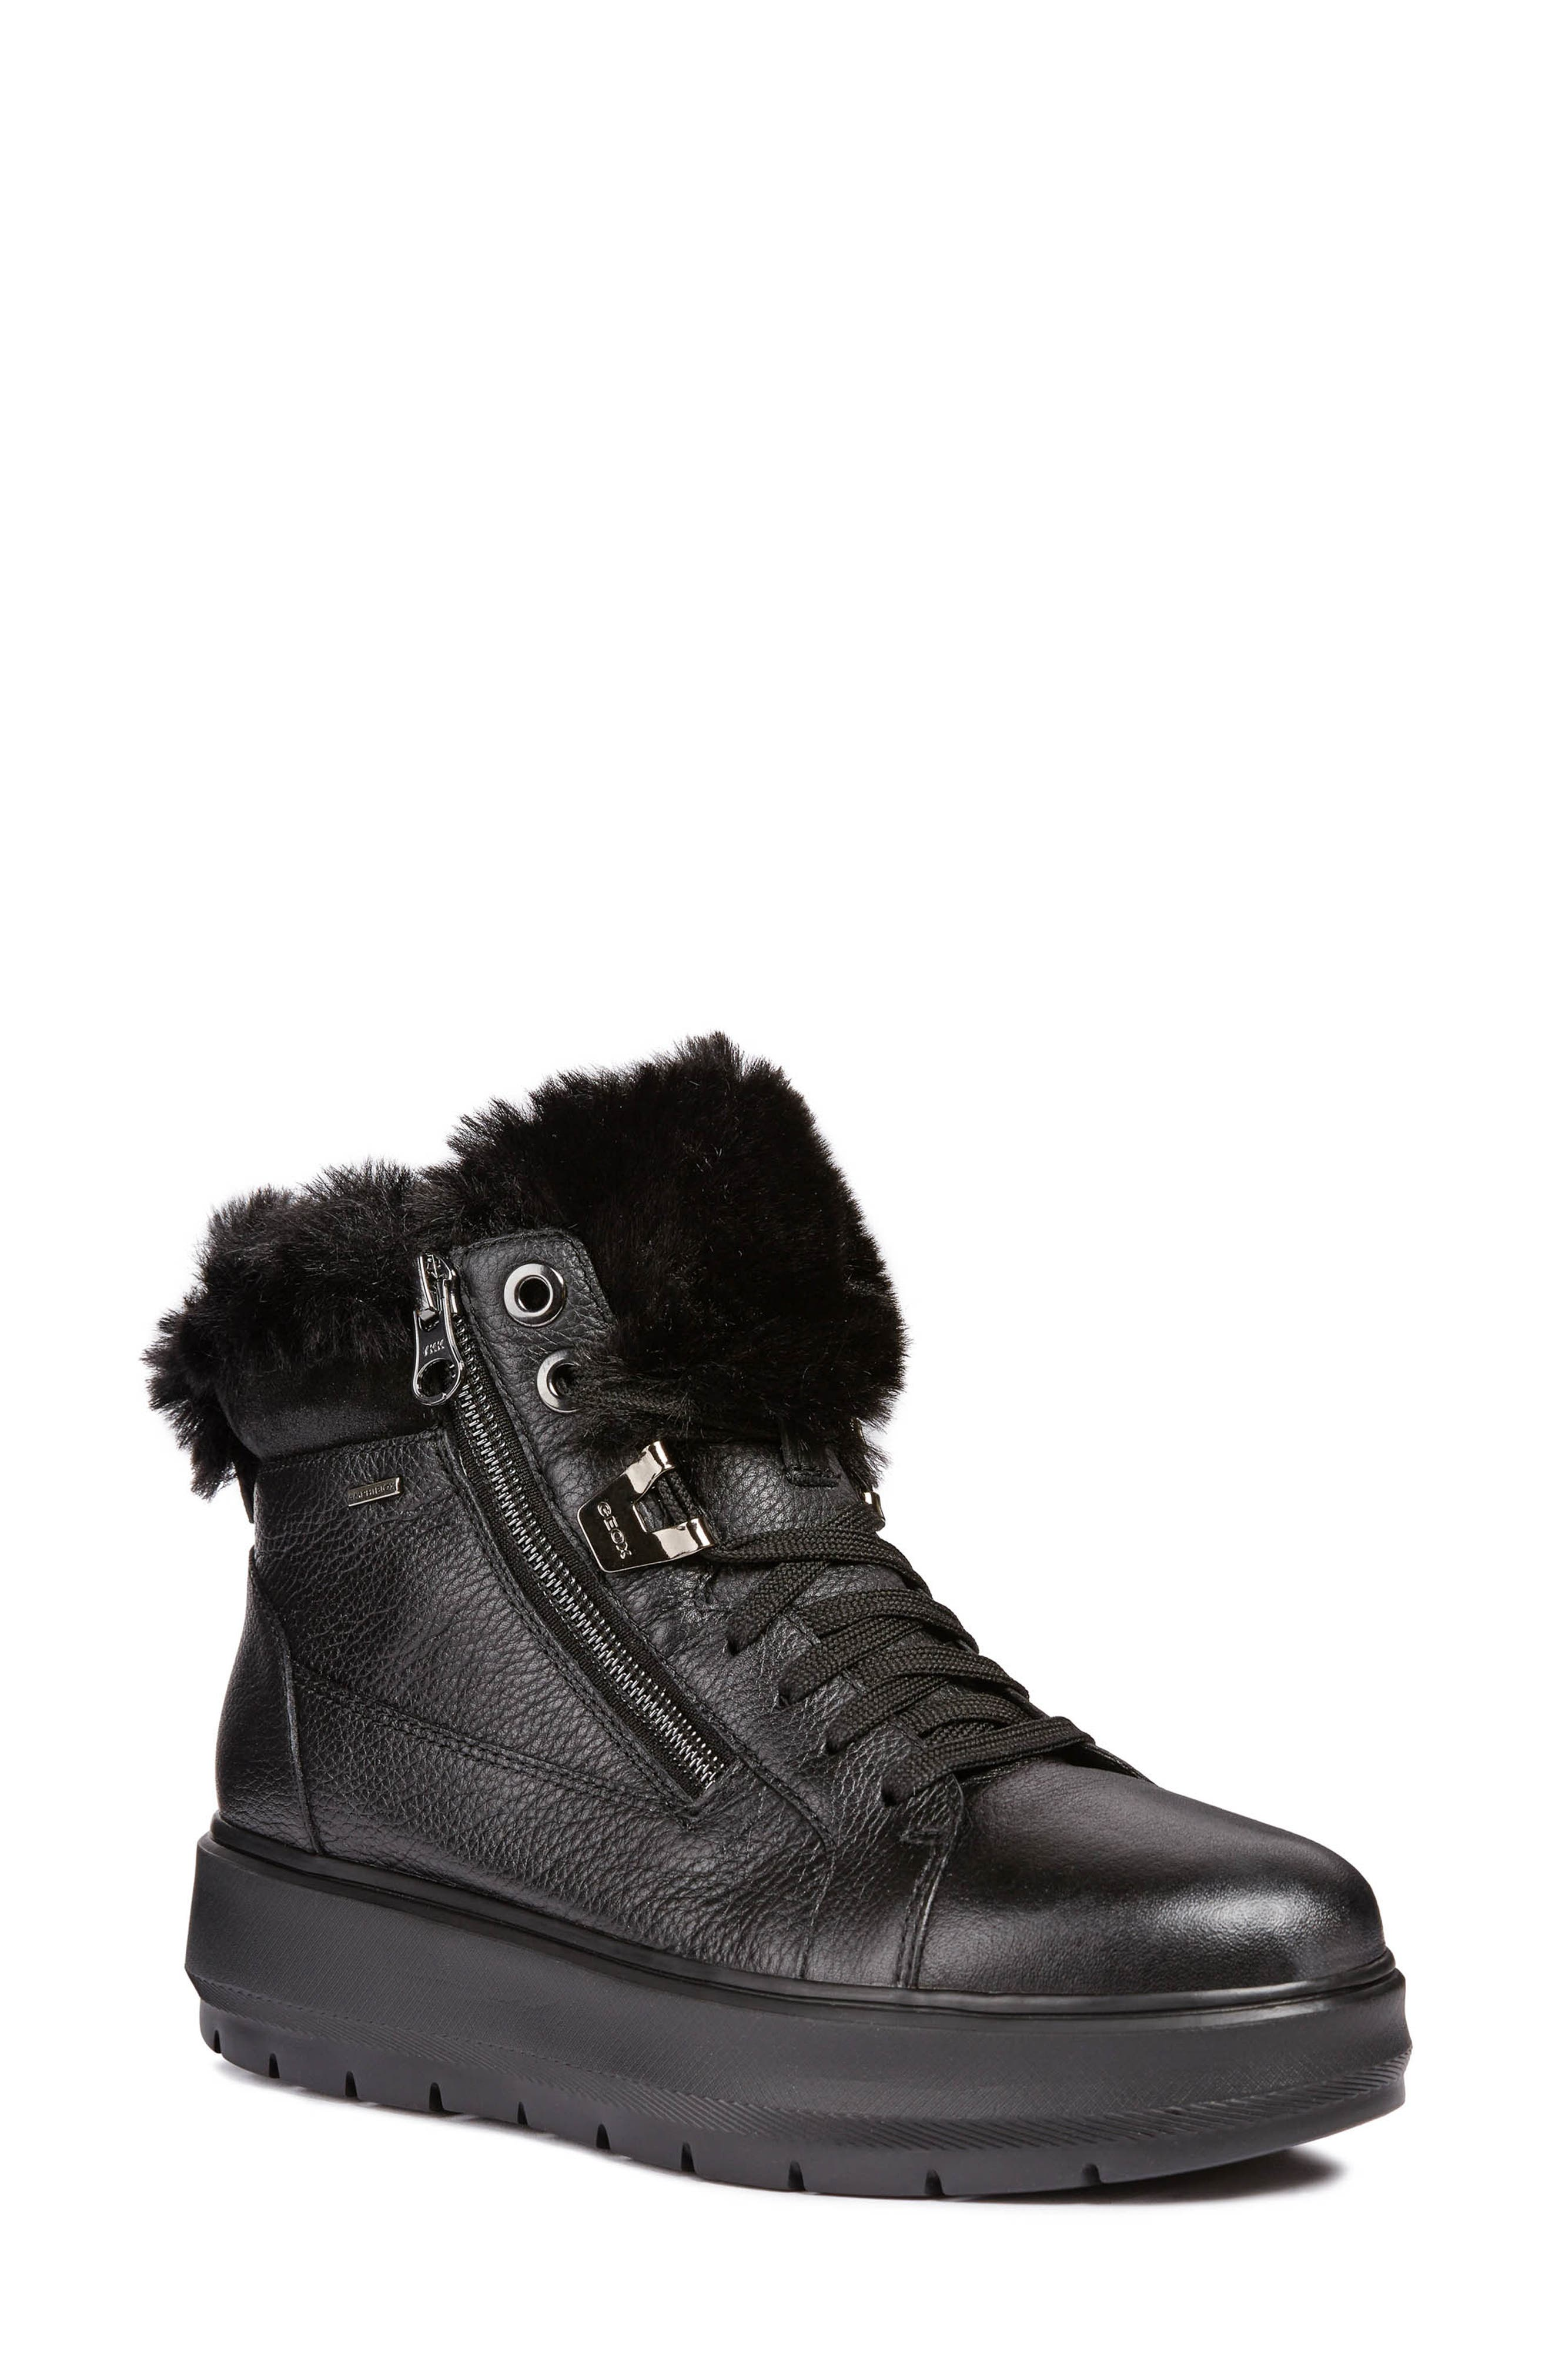 Kaula ABX Waterproof Faux-Fur Cuff Sneaker,                             Main thumbnail 1, color,                             BLACK LEATHER